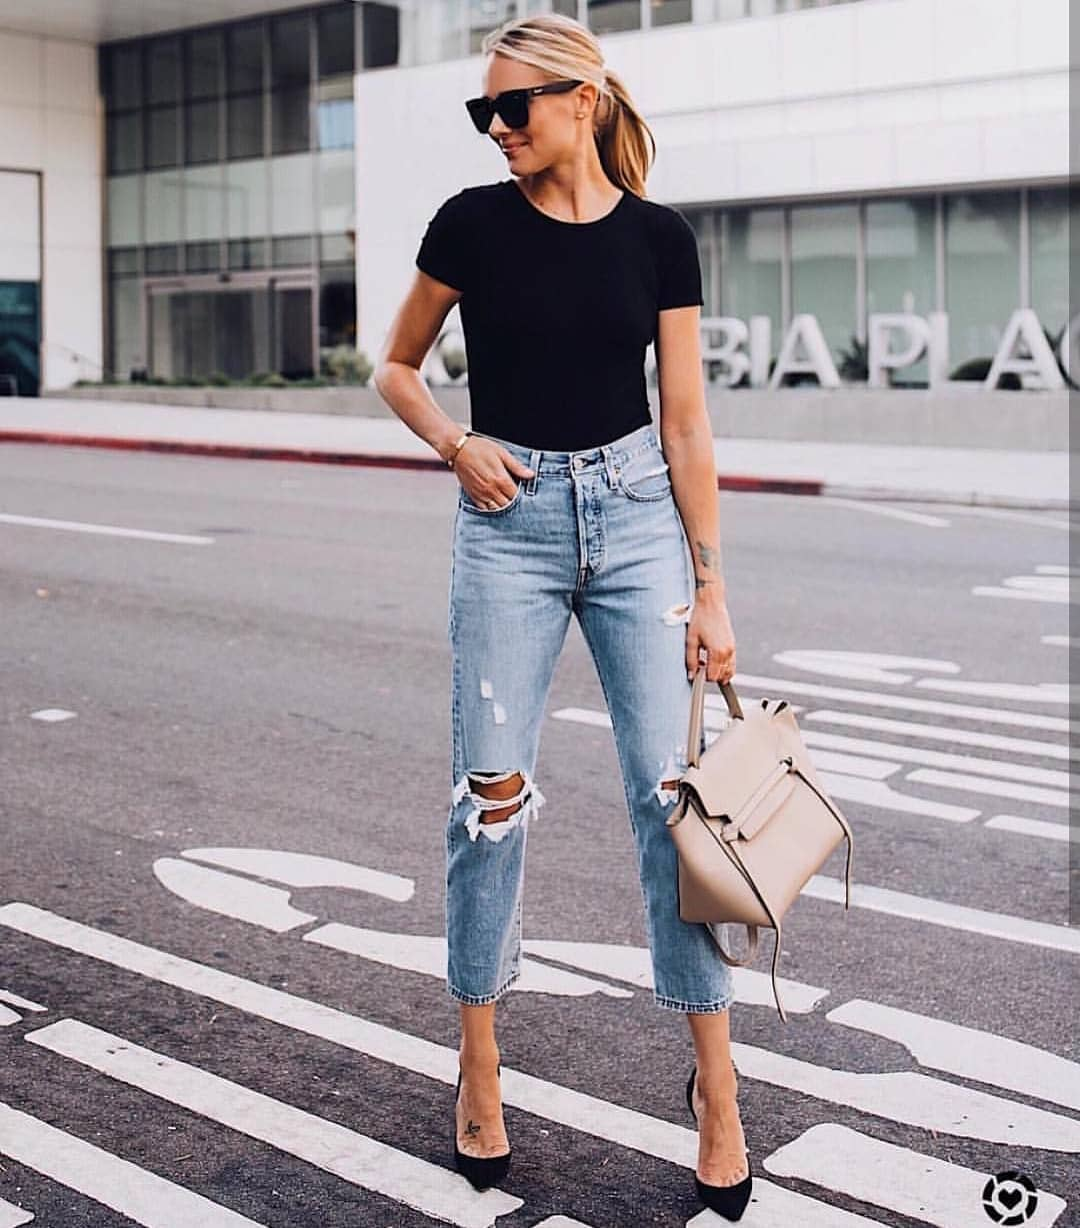 Black Tee And Ripped Wash Blue Jeans With Black Heels: Summer Basic Combo 2020